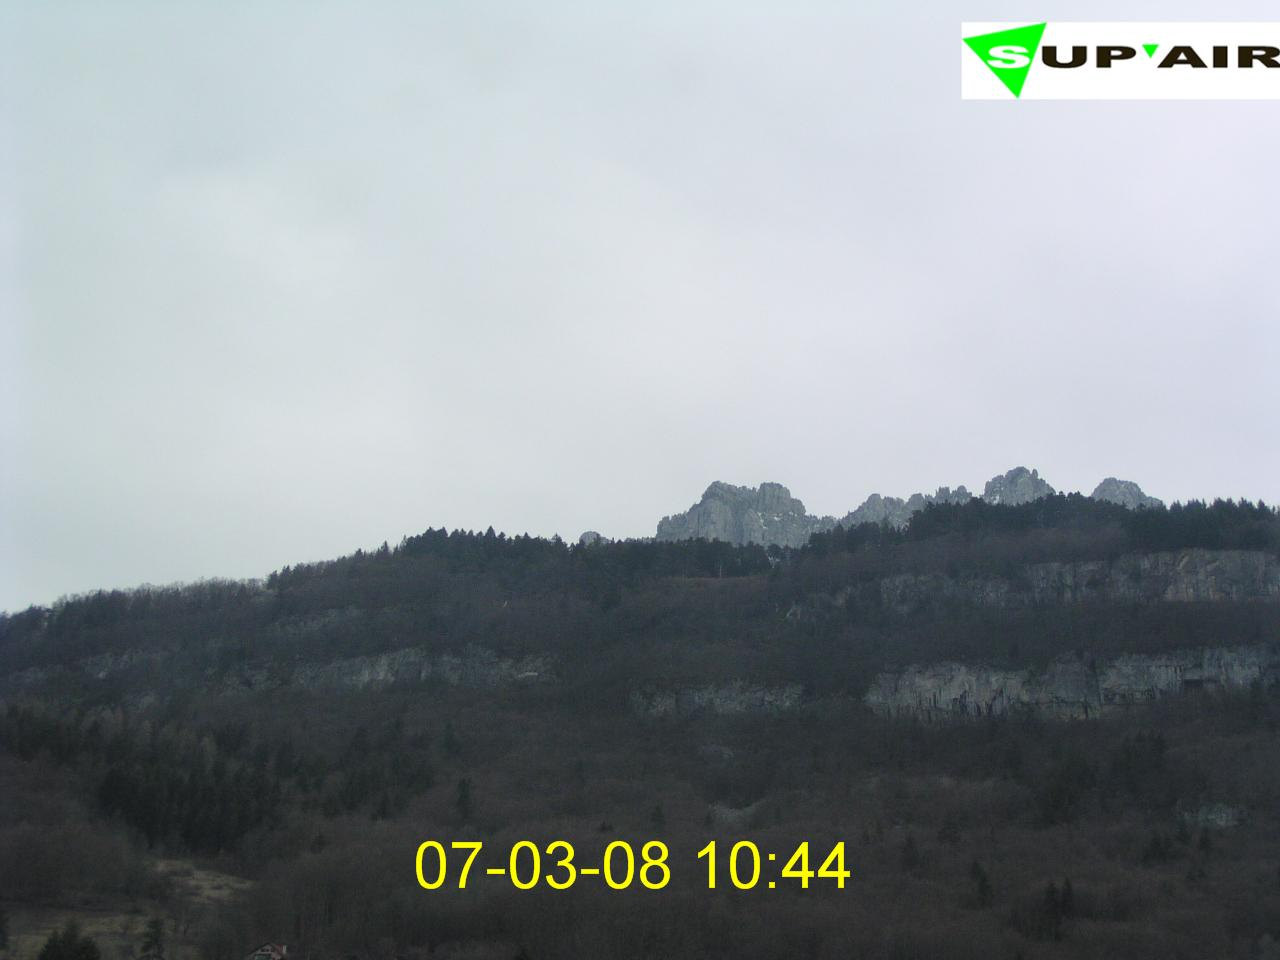 Supair parapente webcam photo 3